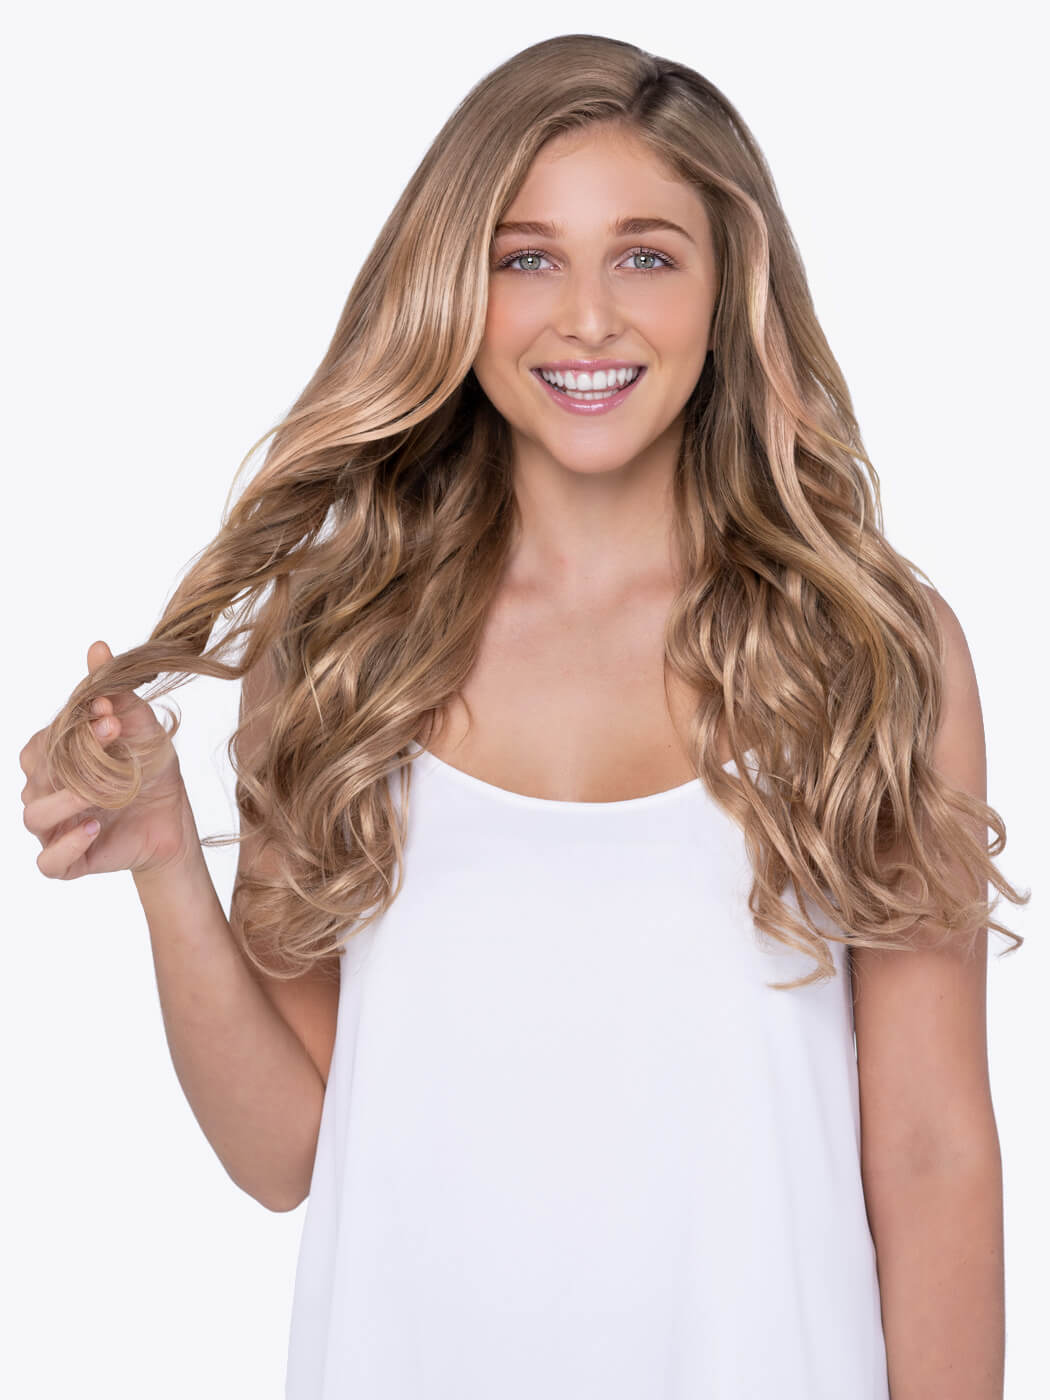 Clip In Human Hair Extensions | 20 Inch Hair Extensions | Blonde Extensions | Strawberry Blonde | Remy Hair Extensions